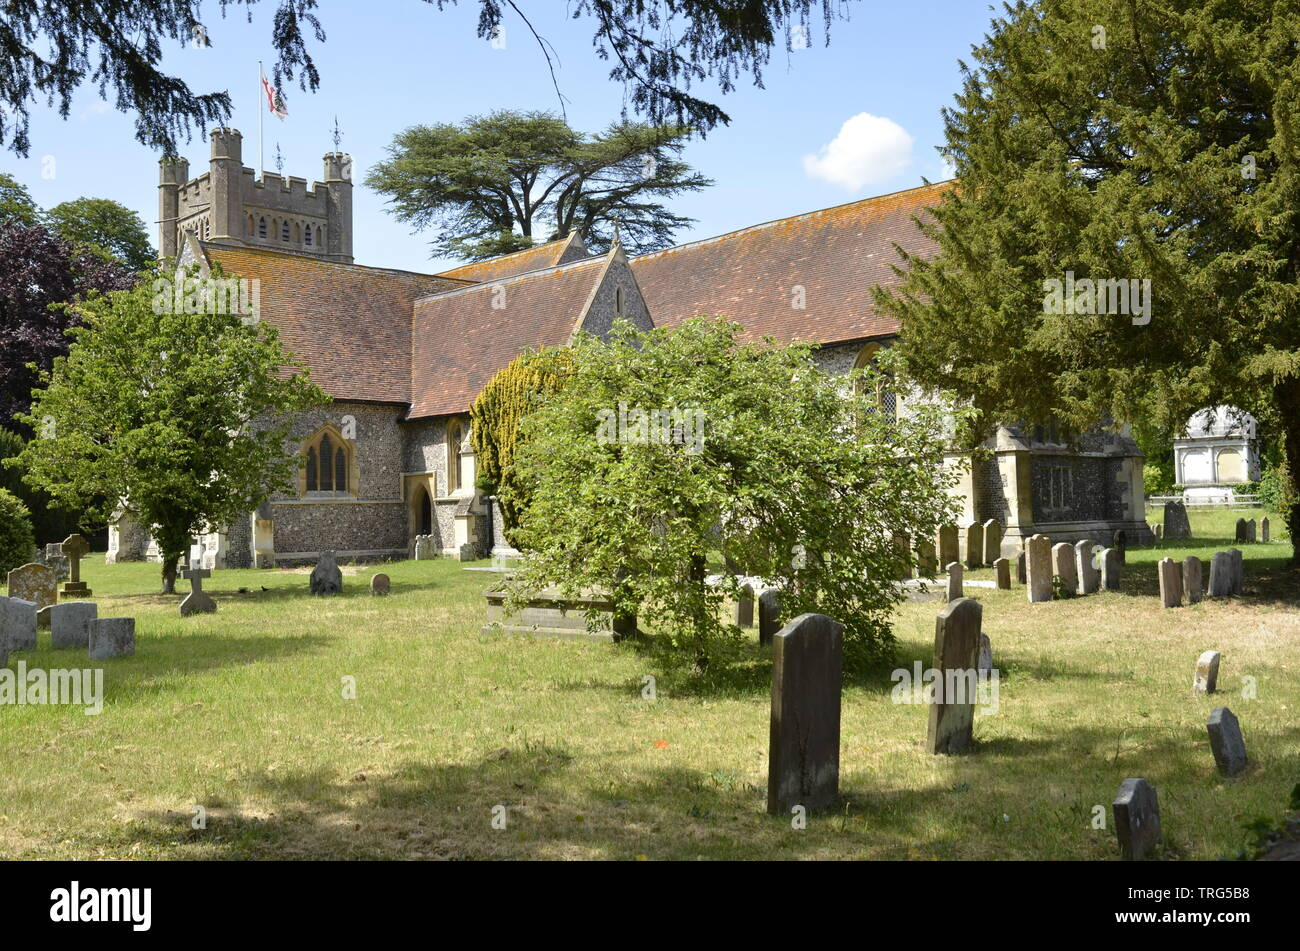 The church of St. Mary the Virgin in the Buckinghamshire village of Hambleden - Stock Image